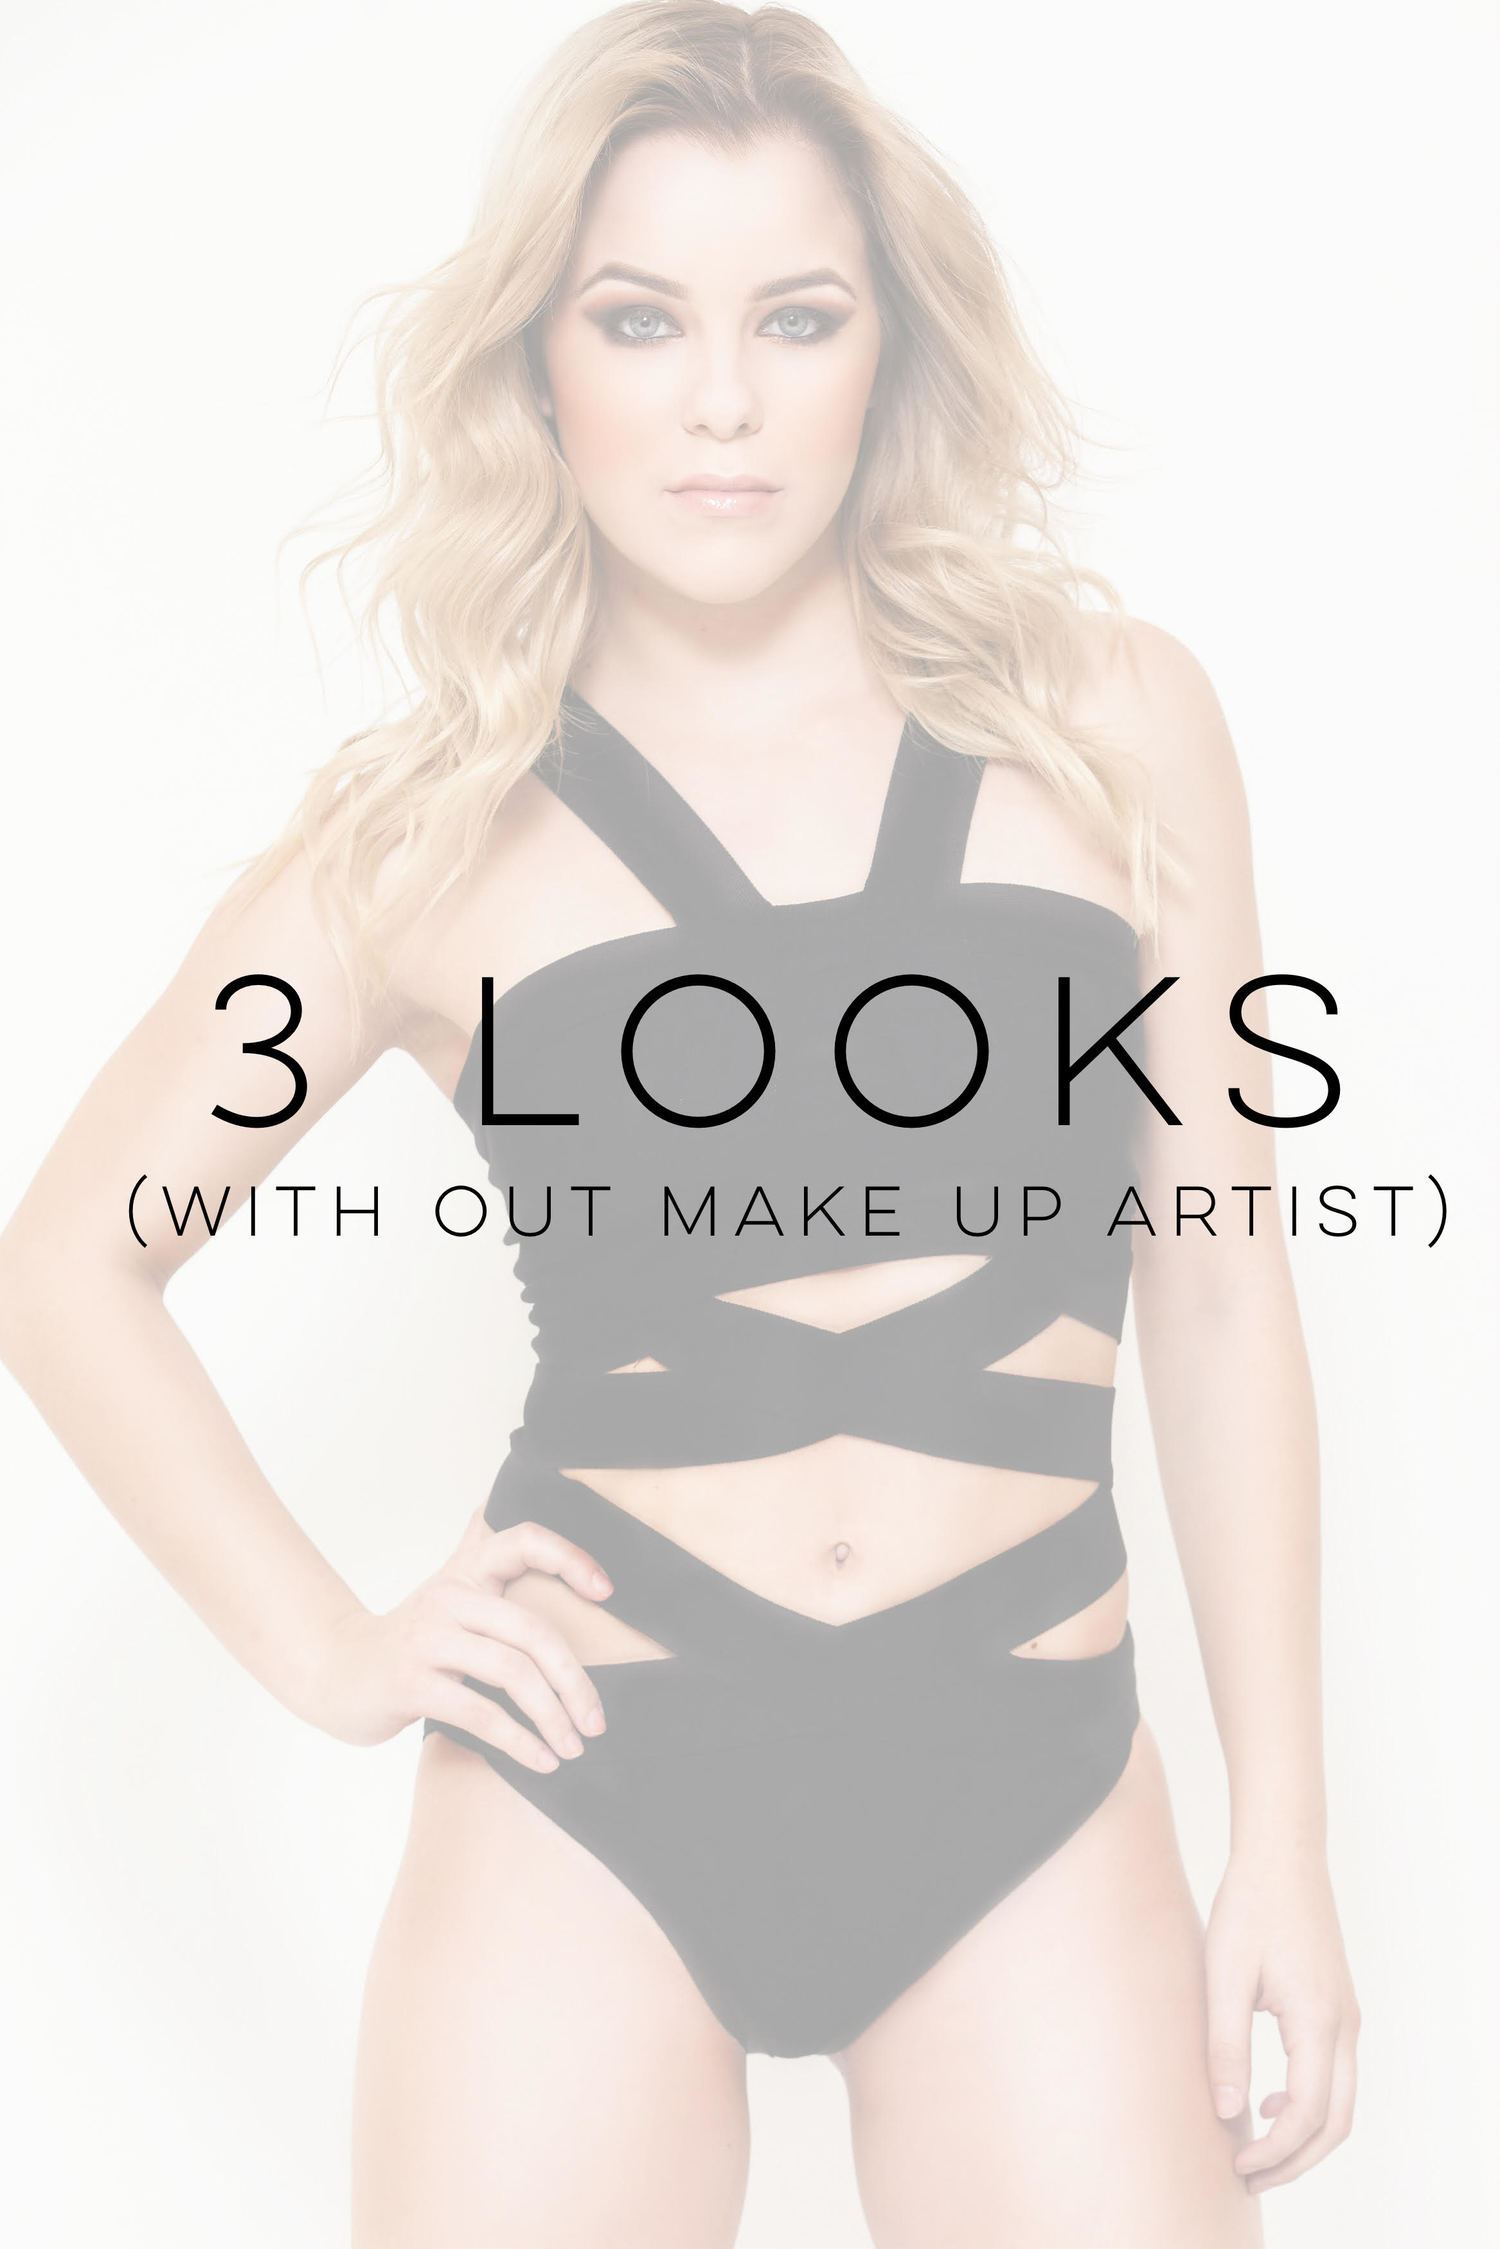 3 Looks with OUT make up artist $200